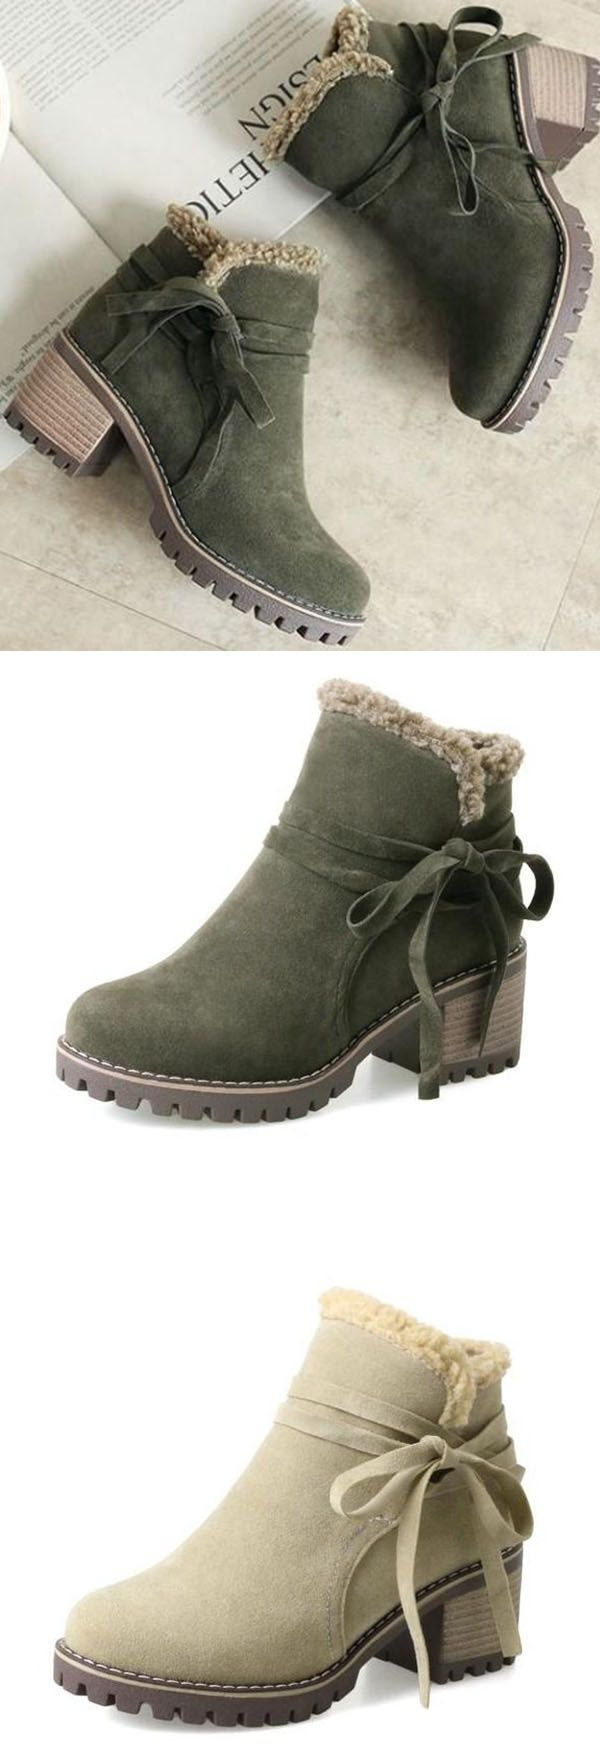 Buy 3 Enjoy 8% OFF Now! (Code: 8OFF) Female Winter Shoes